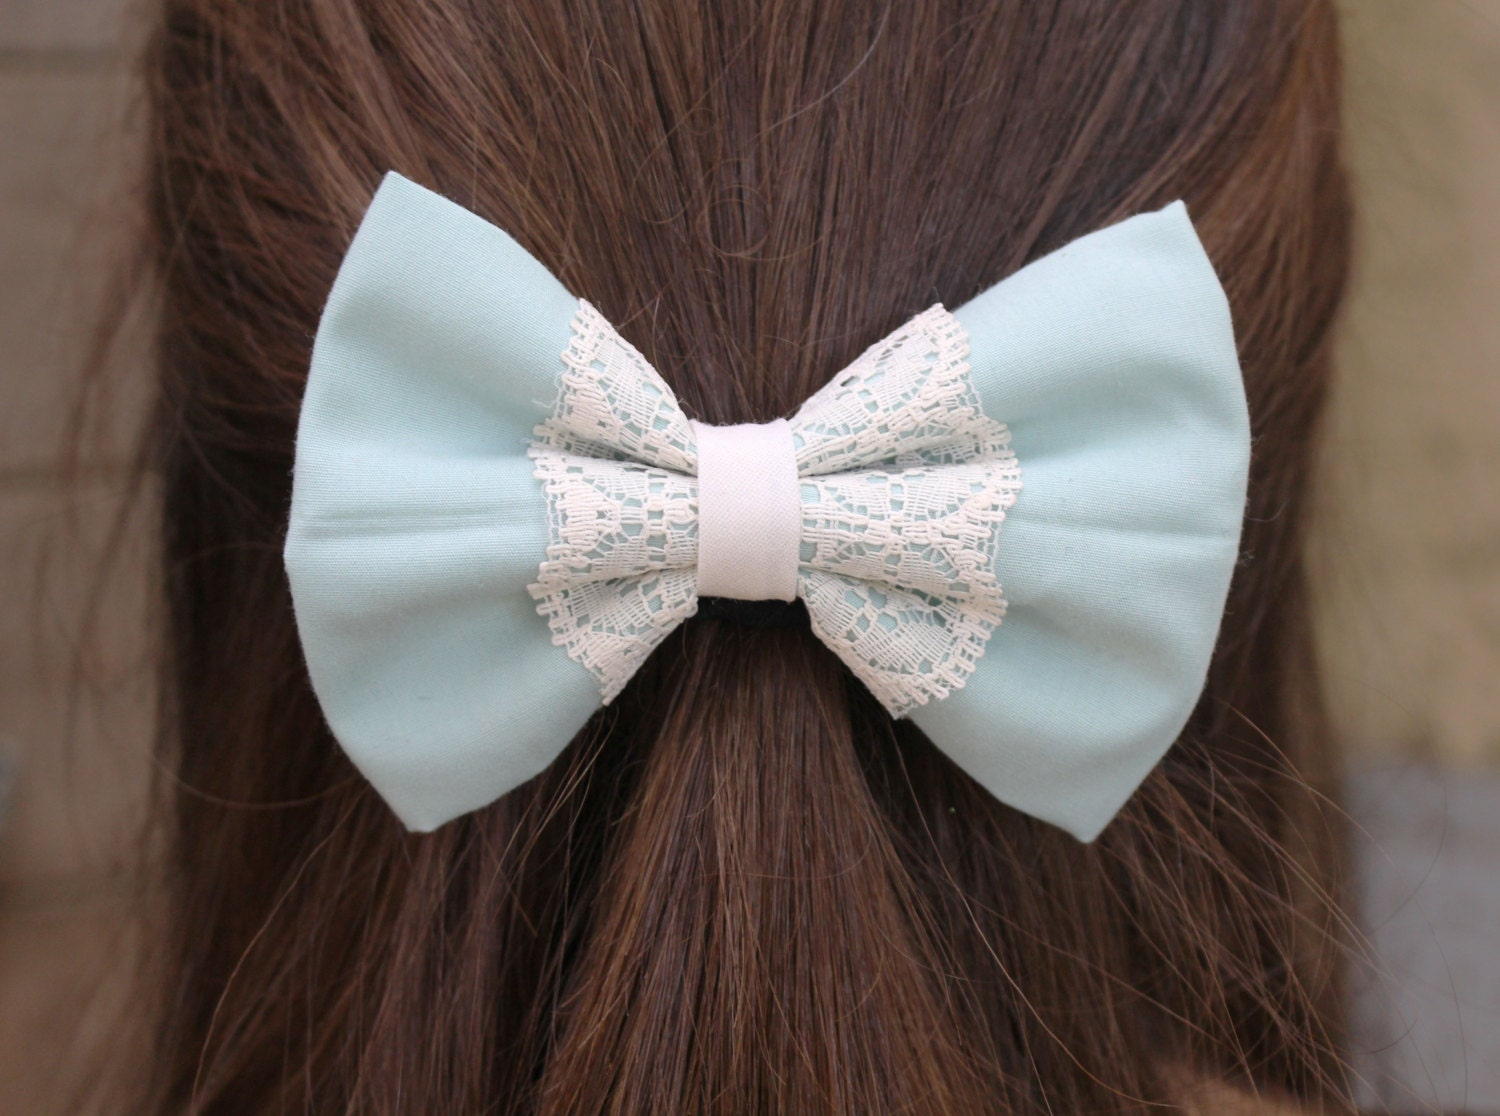 Sep 19, · Edit Article How to Make a Hair Bow out of Ribbon. Four Methods: Preparing the Fabric and Materials Creating the Bow Tie Hair Bow Creating the Classic Hair Bow Creating a Layered Hair Bow Community Q&A Hair bows are fun accessories that can be worn with any length of hair 50%(2).